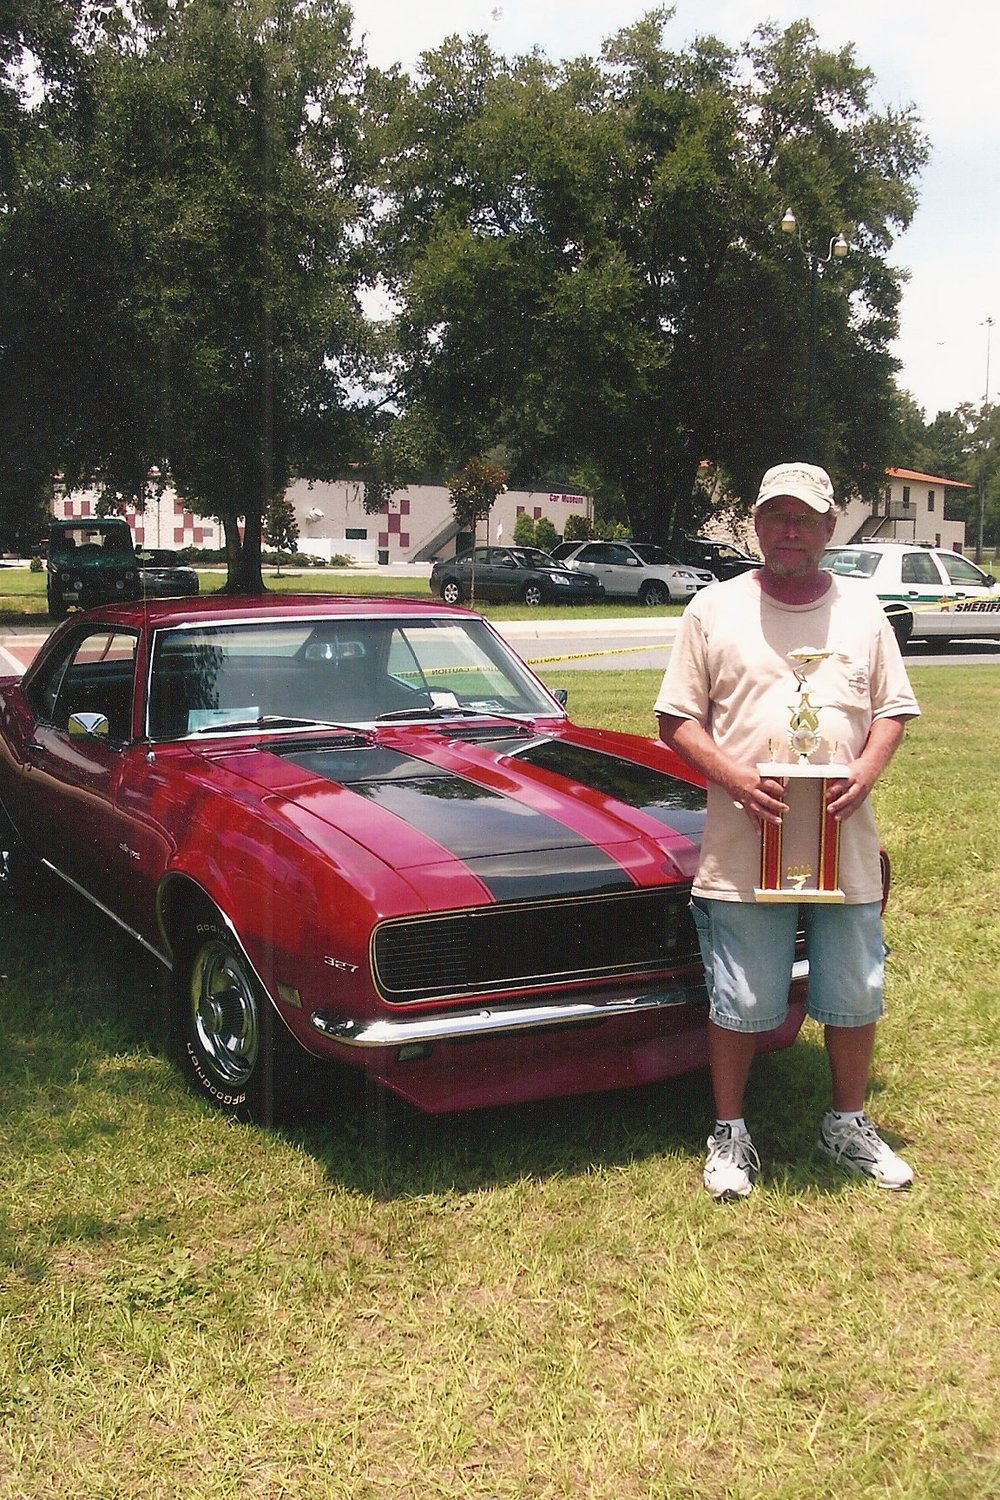 Hanging out with my 1968 Camaro RS! Won Best in Class for Ernie Sim's Big Hits Car Show Benefiting Kids.